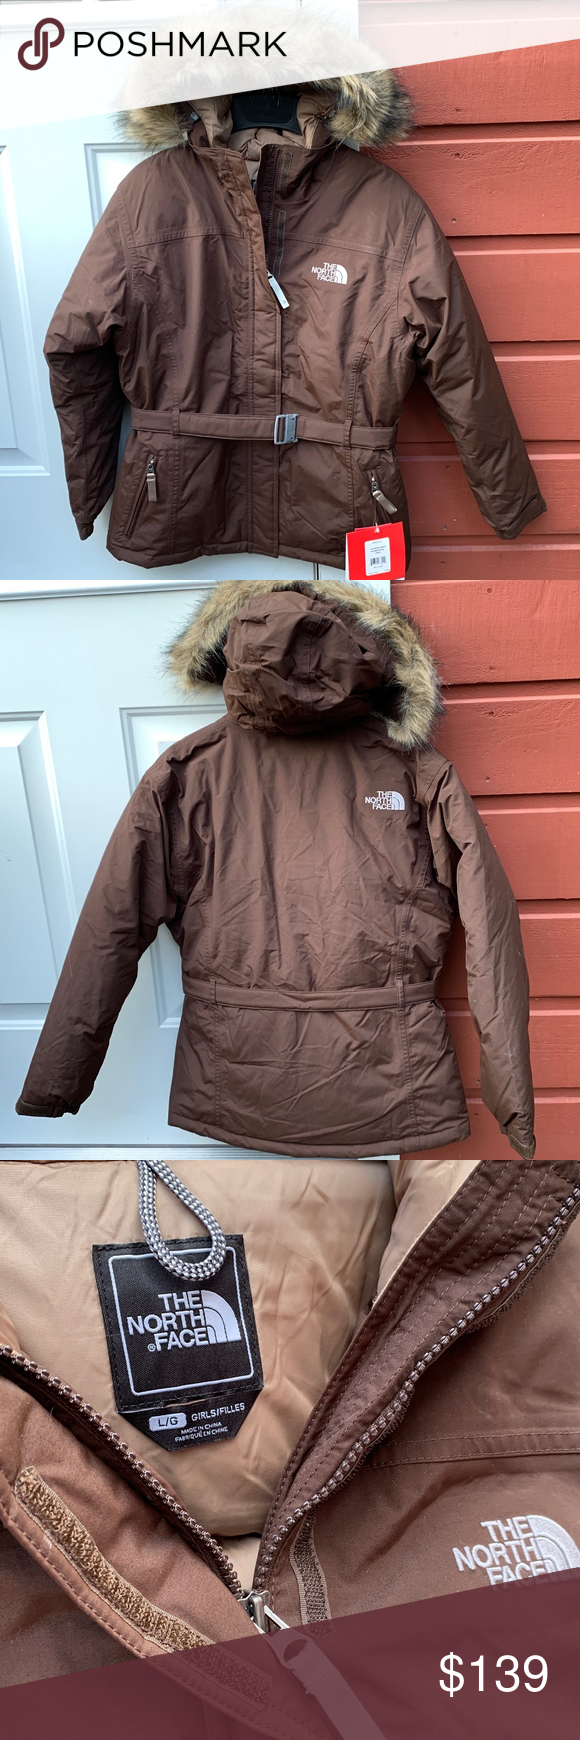 North Face Girls Greenland Jacket Brownie Brown Girls North Face Jacket Grey North Face Jacket North Face Girls [ 1740 x 580 Pixel ]